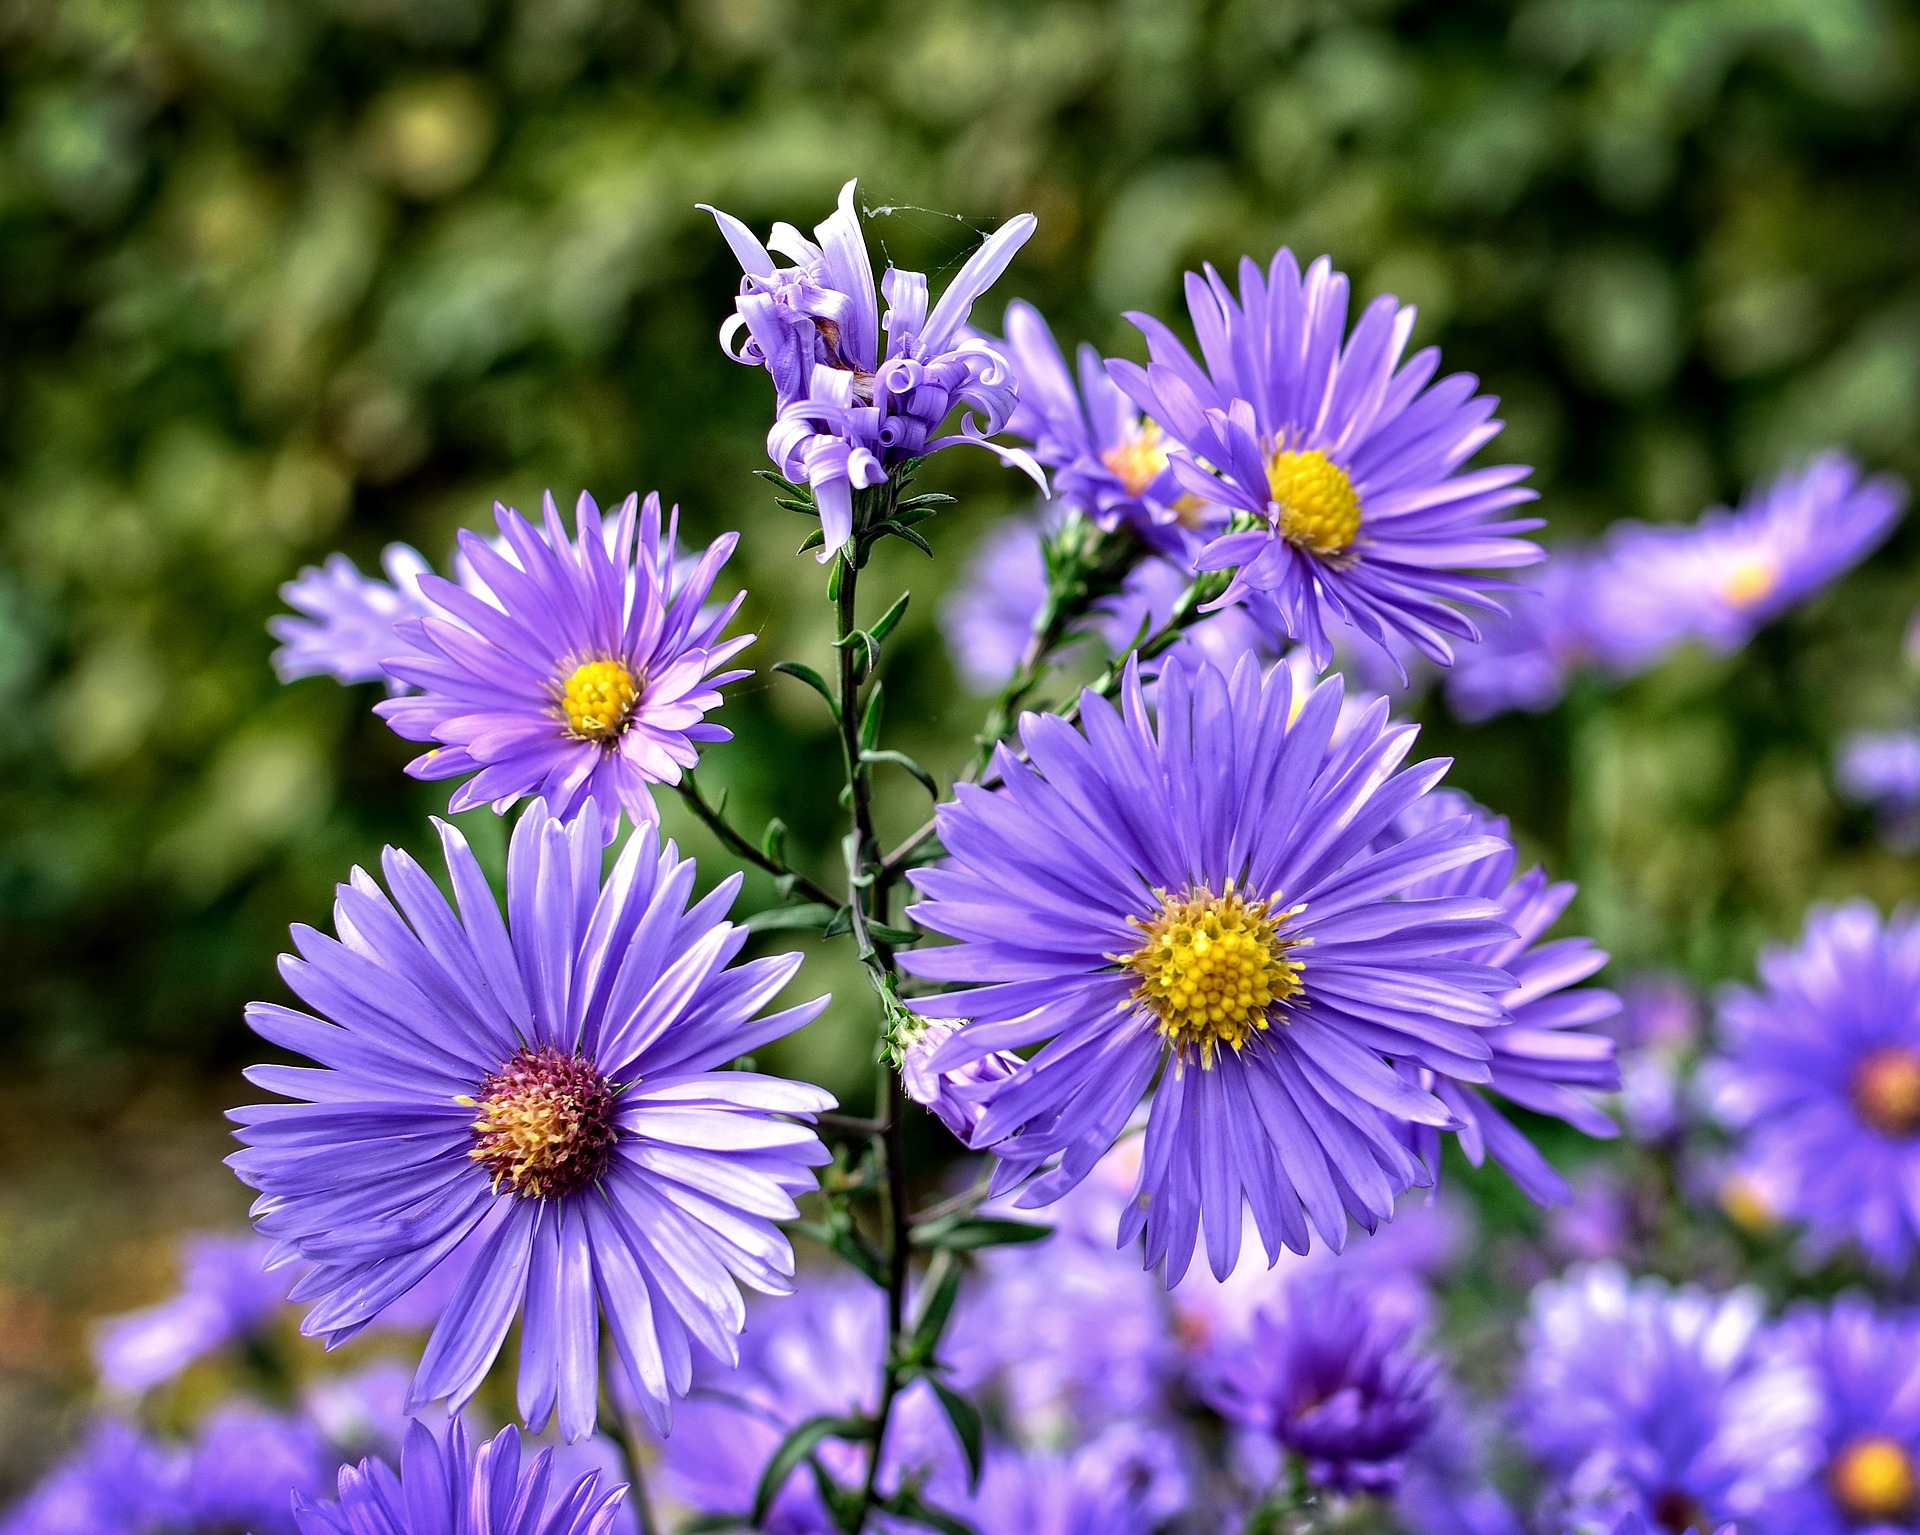 Aster: How to Plant, Grow, and Care for Aster Flowers | The Old ...